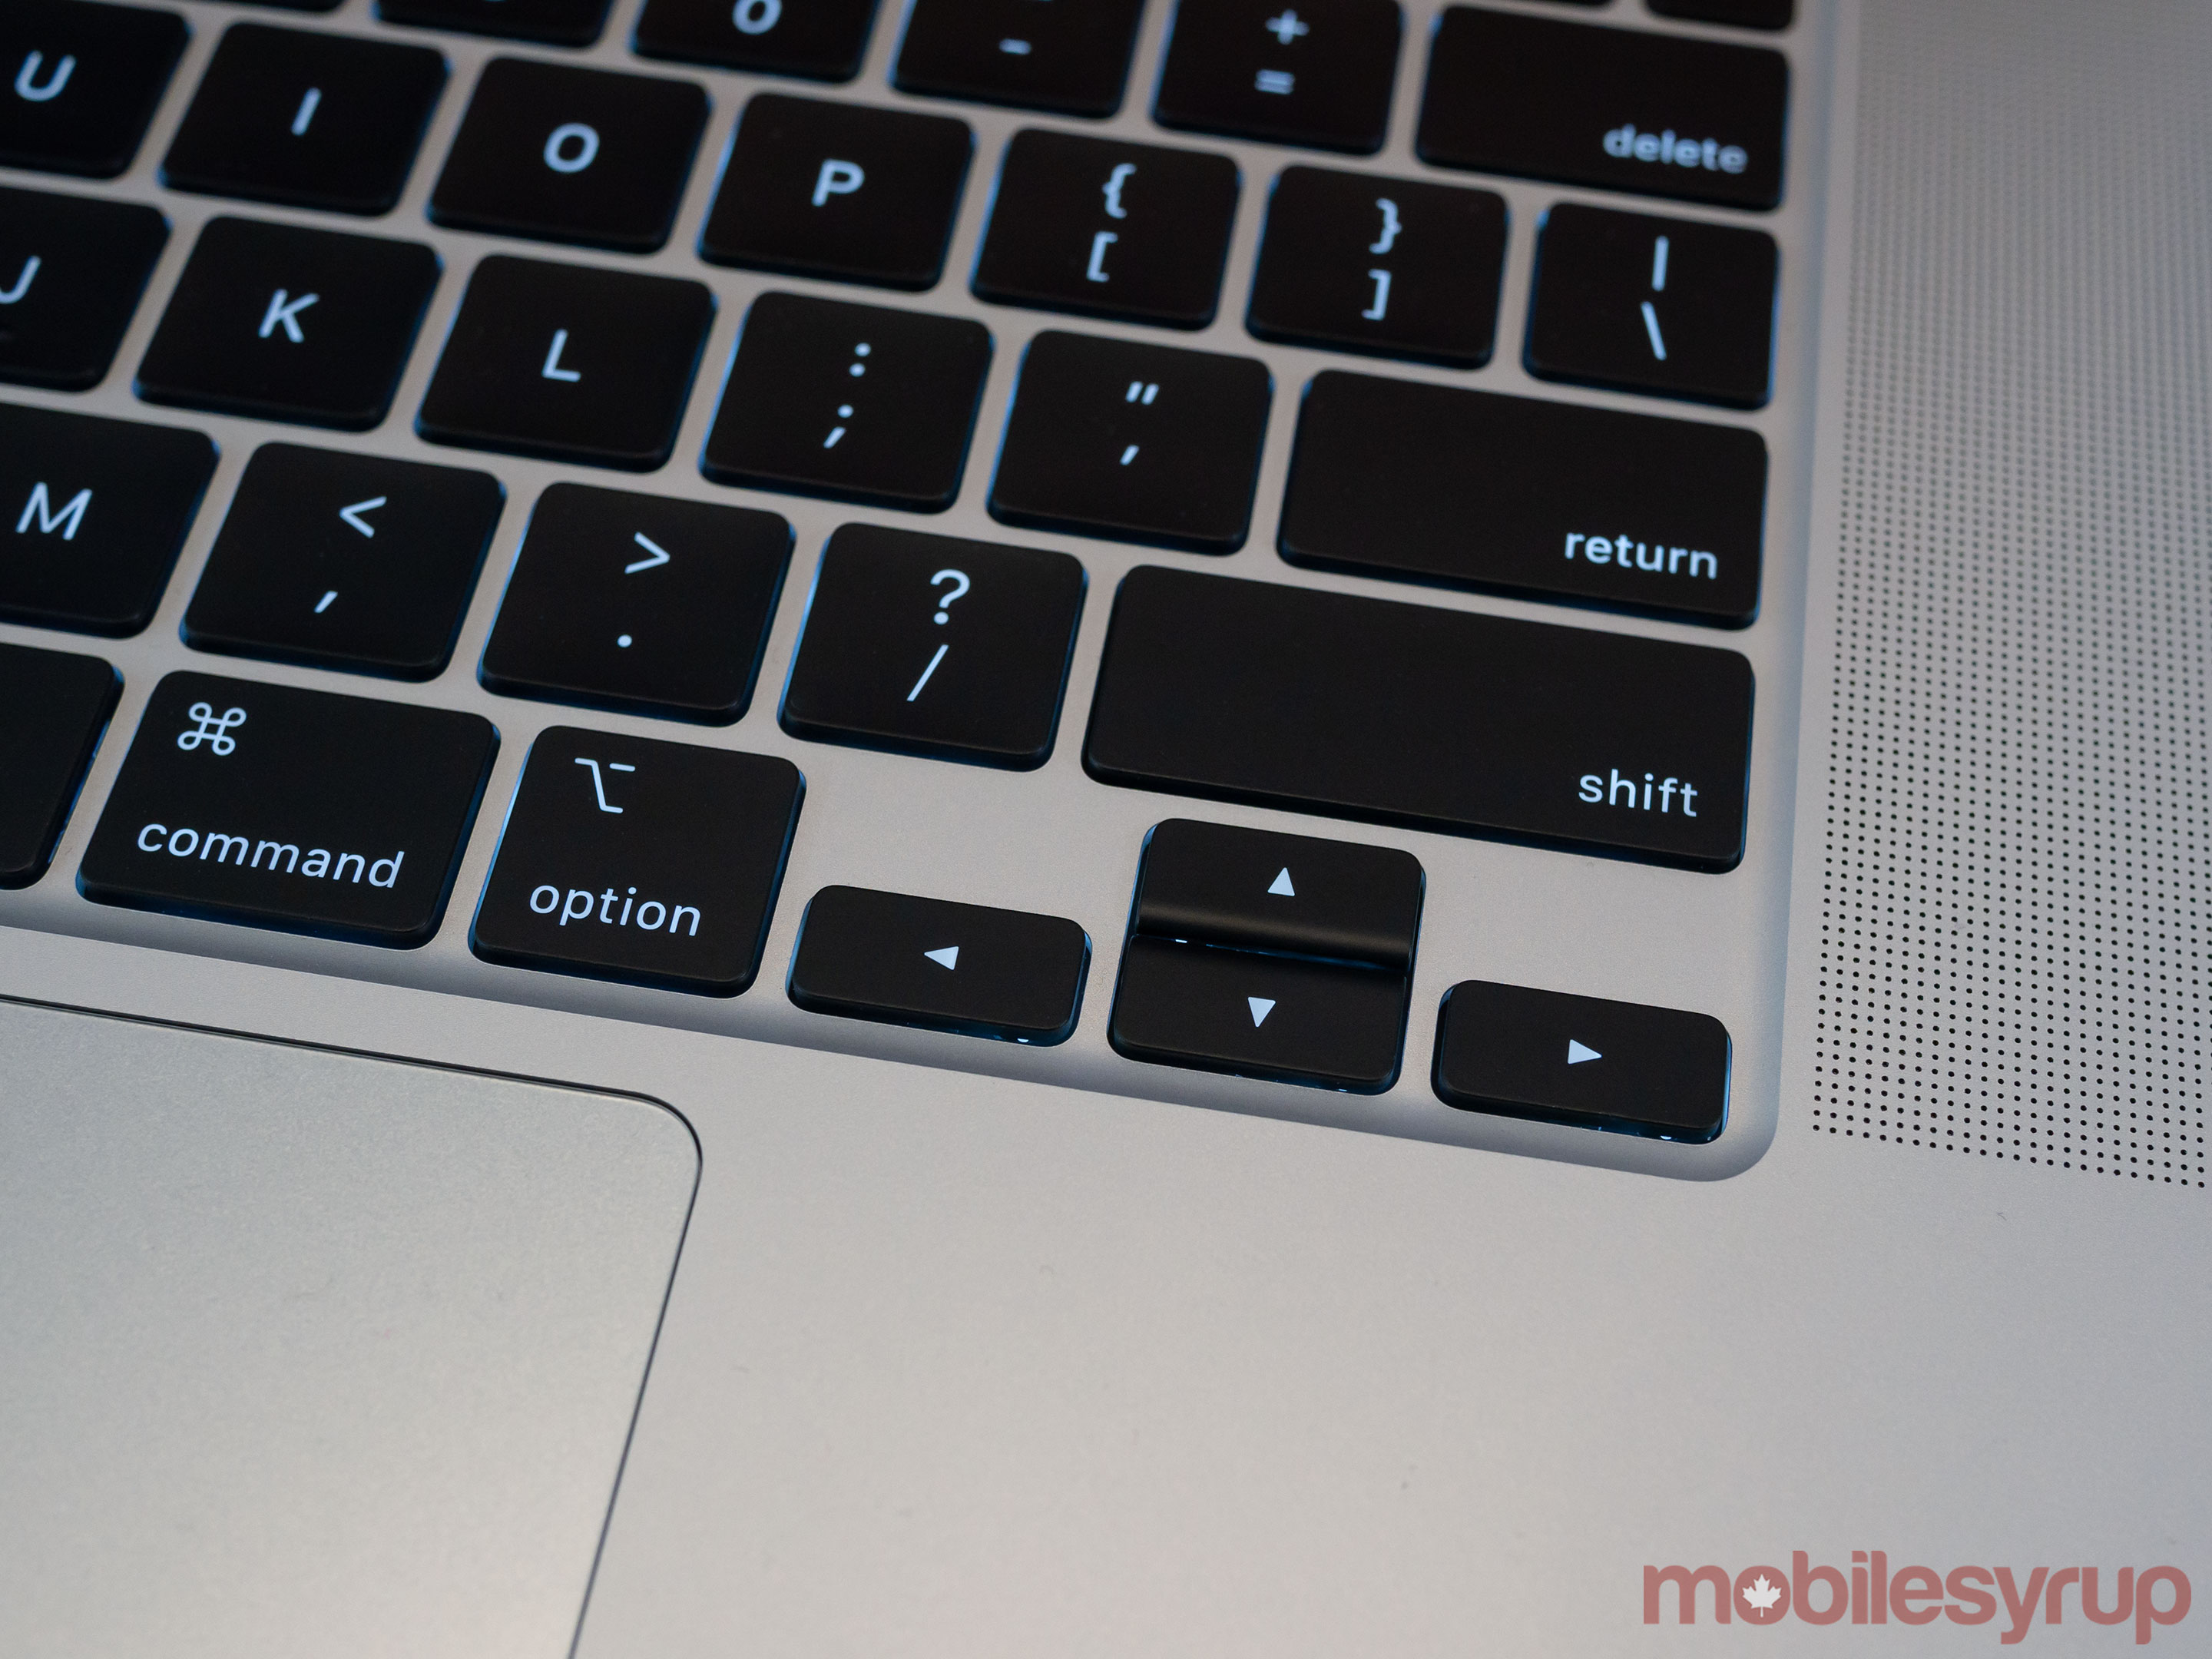 16-inch MacBook Pro arrow keys